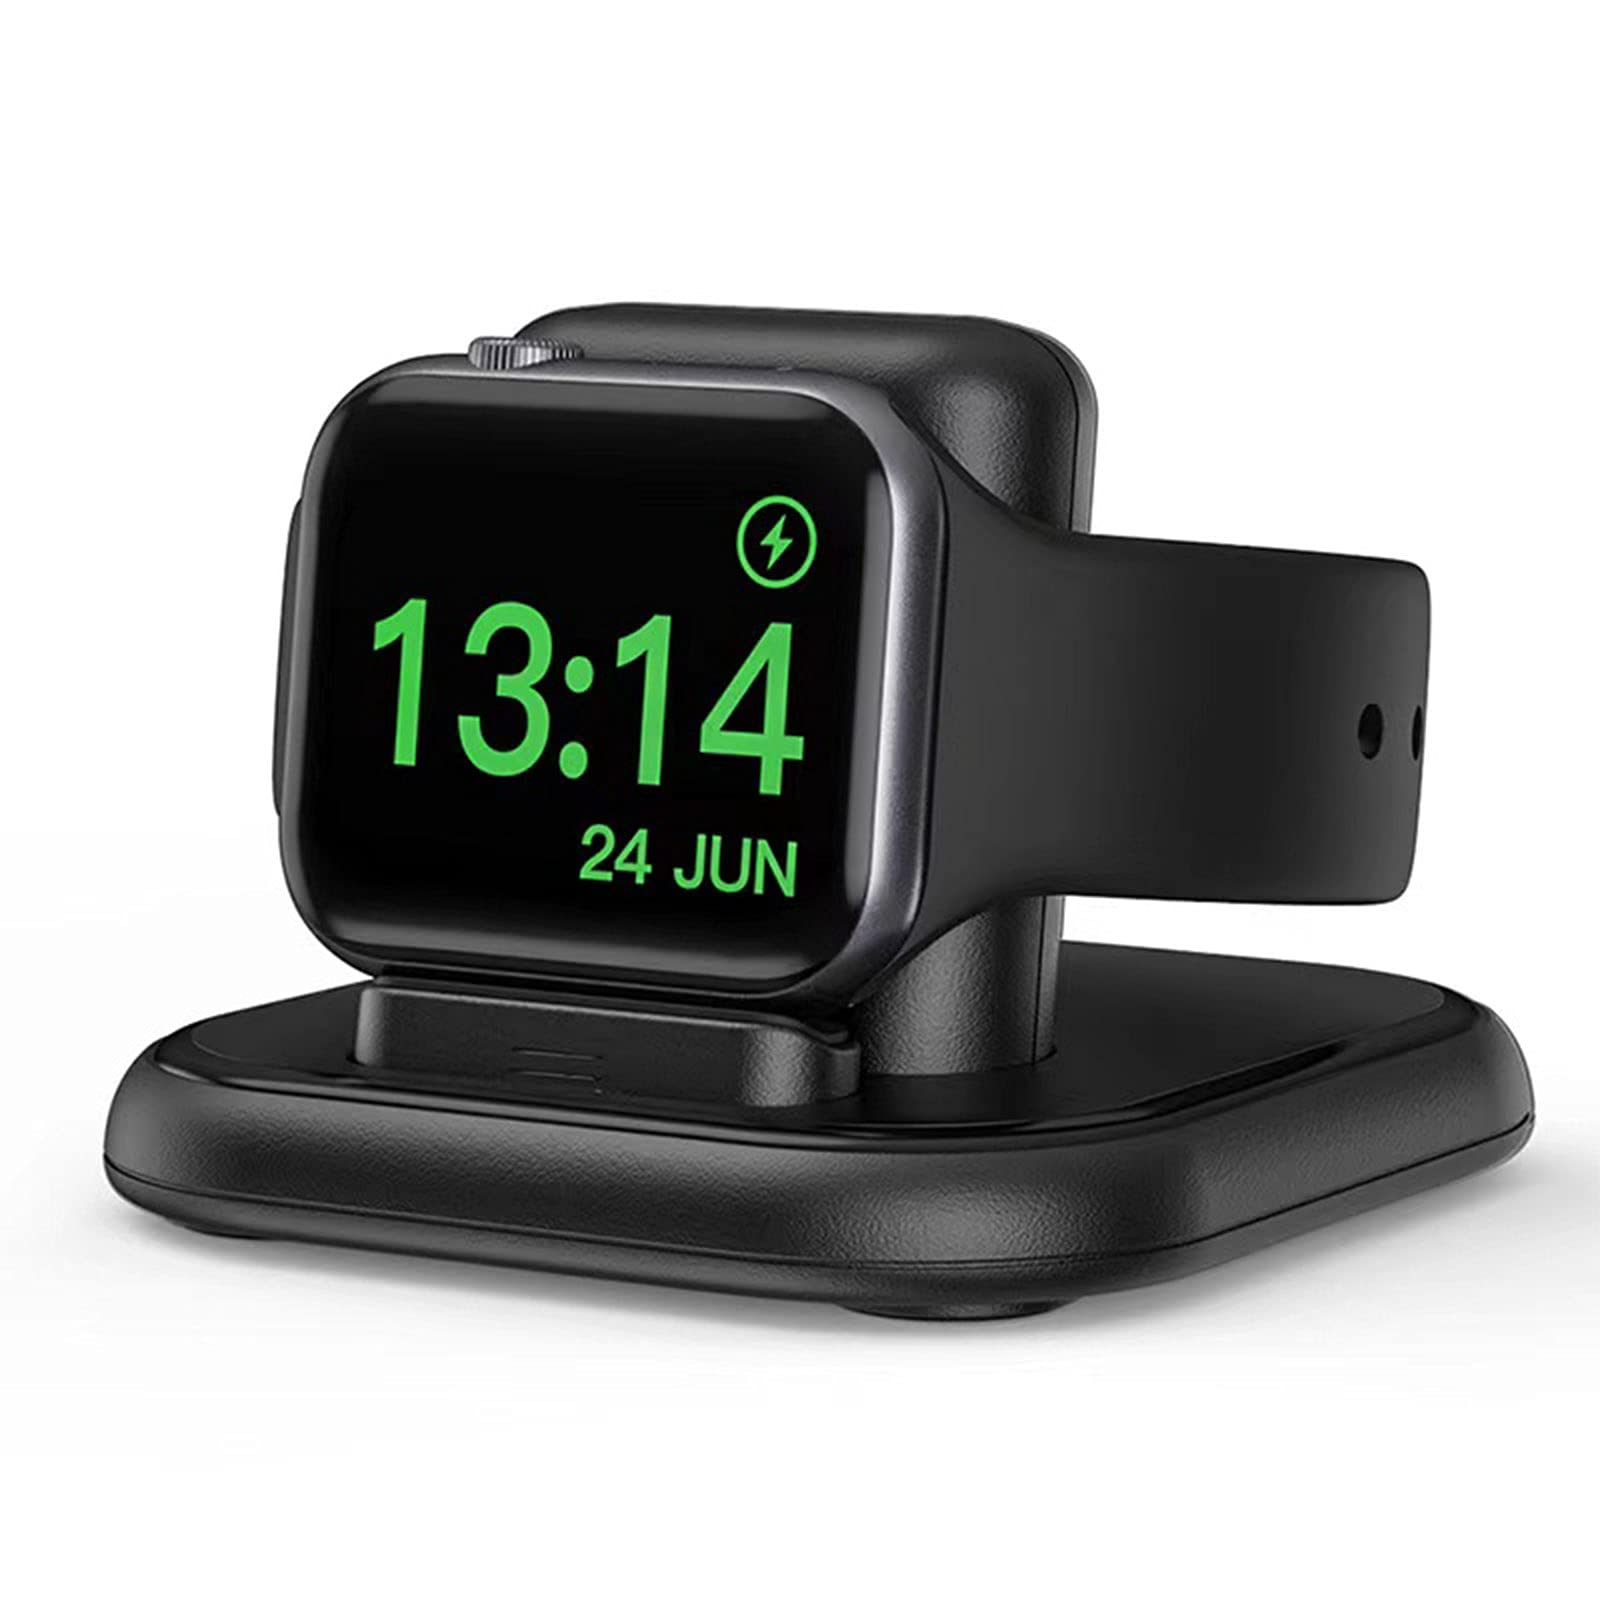 LUKKAHH Charger Stand for Apple Watch,Magnetic Wireless Charging Station,Compatible with iWatch Apple Watch SE Series 6/5/4/3/2/1/44mm/42mm/40mm/38mm,Night Stand Charging Dock - Black